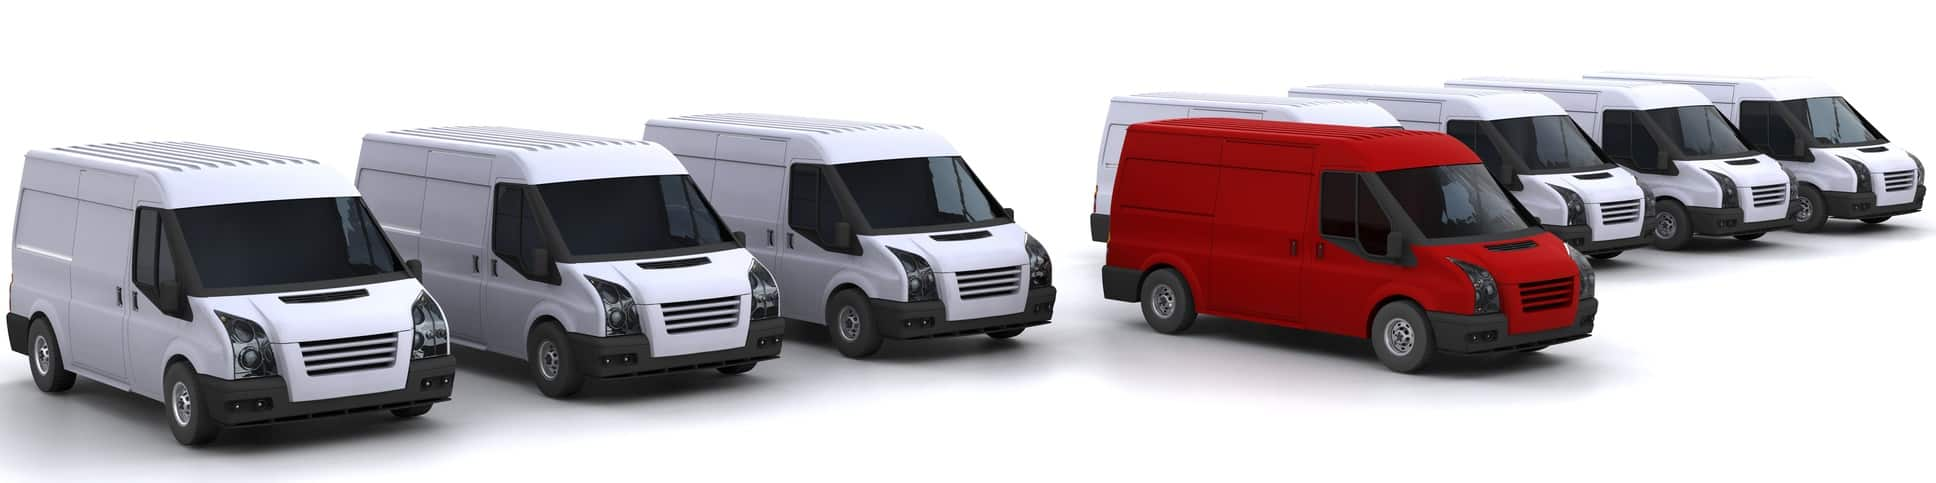 Van Rental Reviews: What You Should about Different Brands, Seaters Vans and Costing